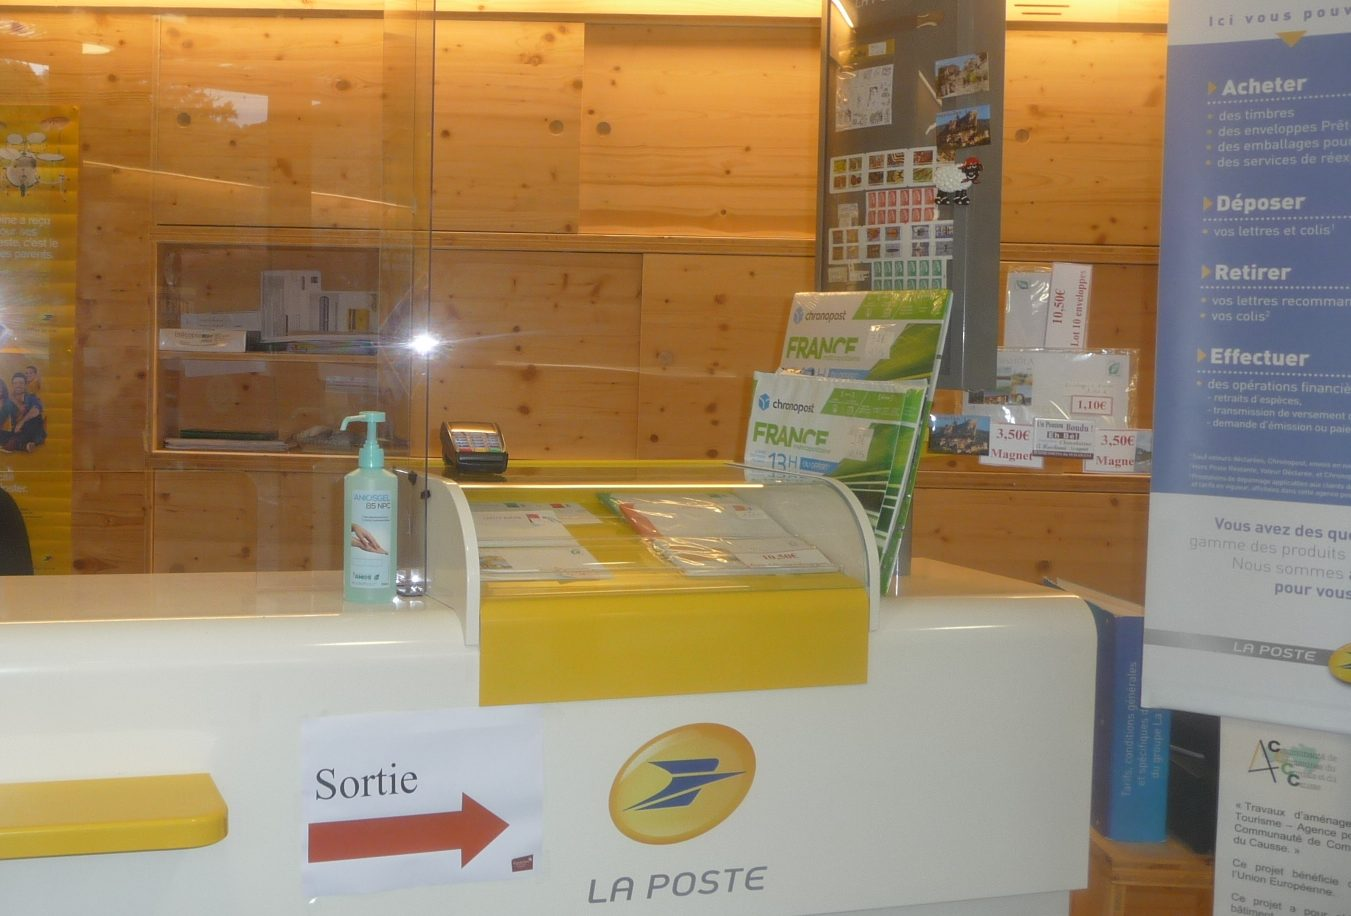 agence-postale-communale-a-penne